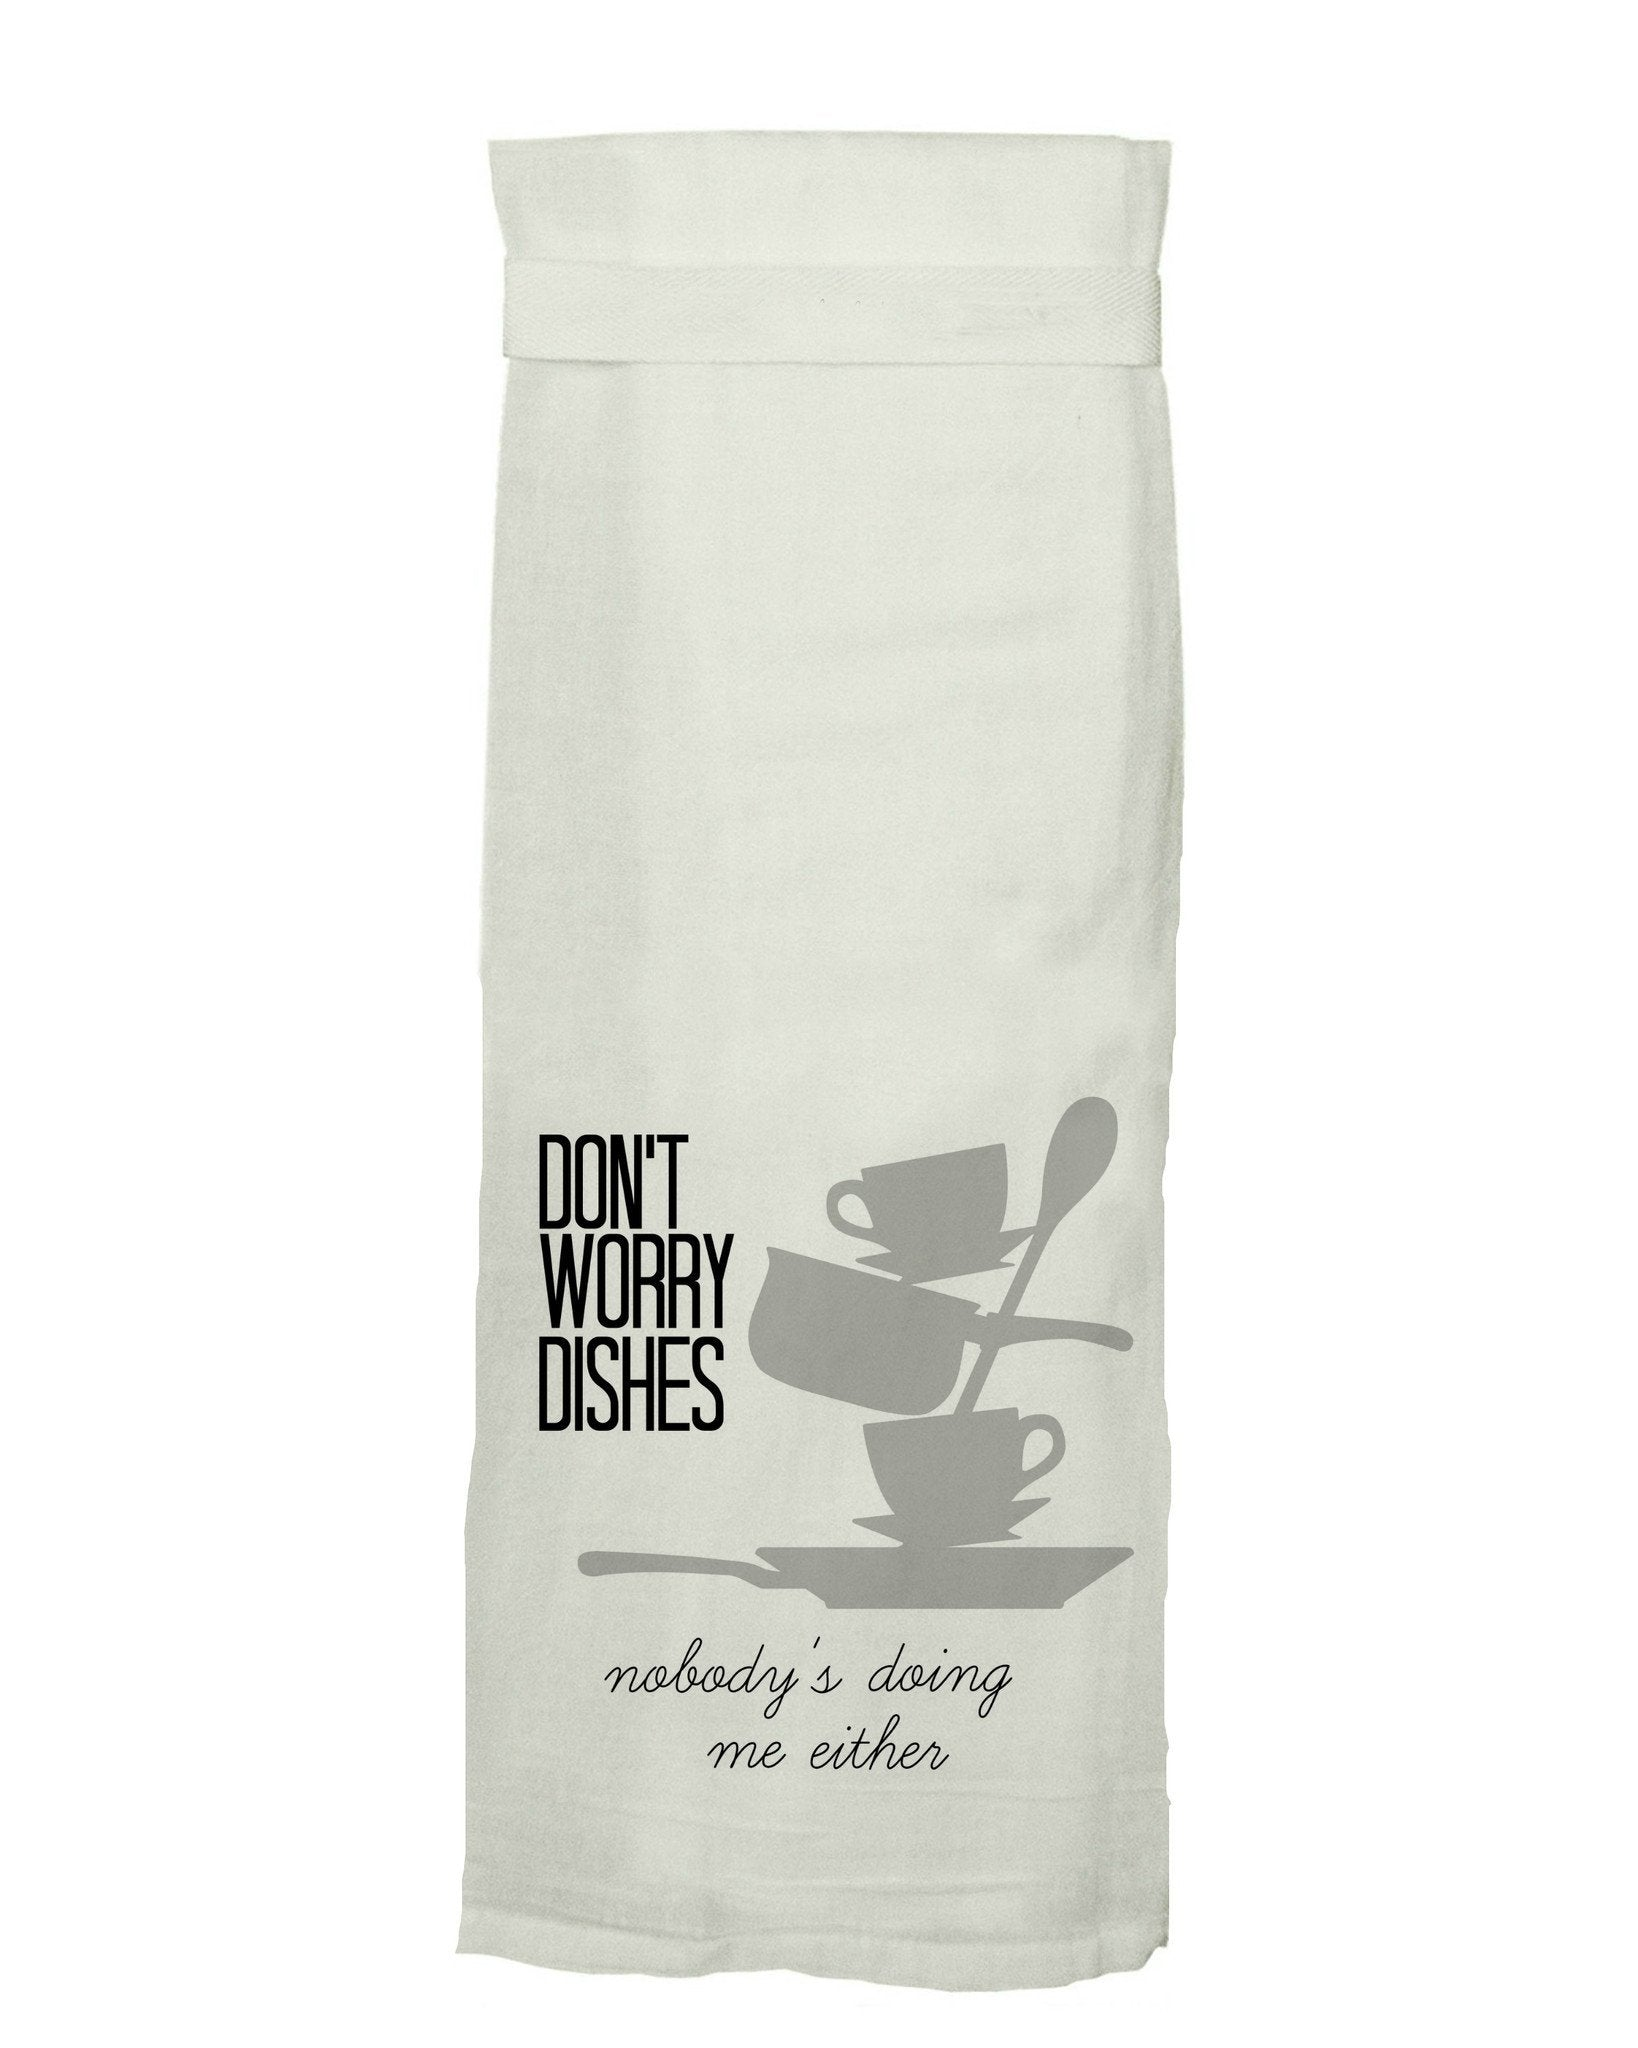 Buy Don't Worry Dishes Flour Sack Tea Towel by Twisted Wares from Walking Pants Curiosities, the Most un-General Gift Store in Downtown Memphis, Tennessee!